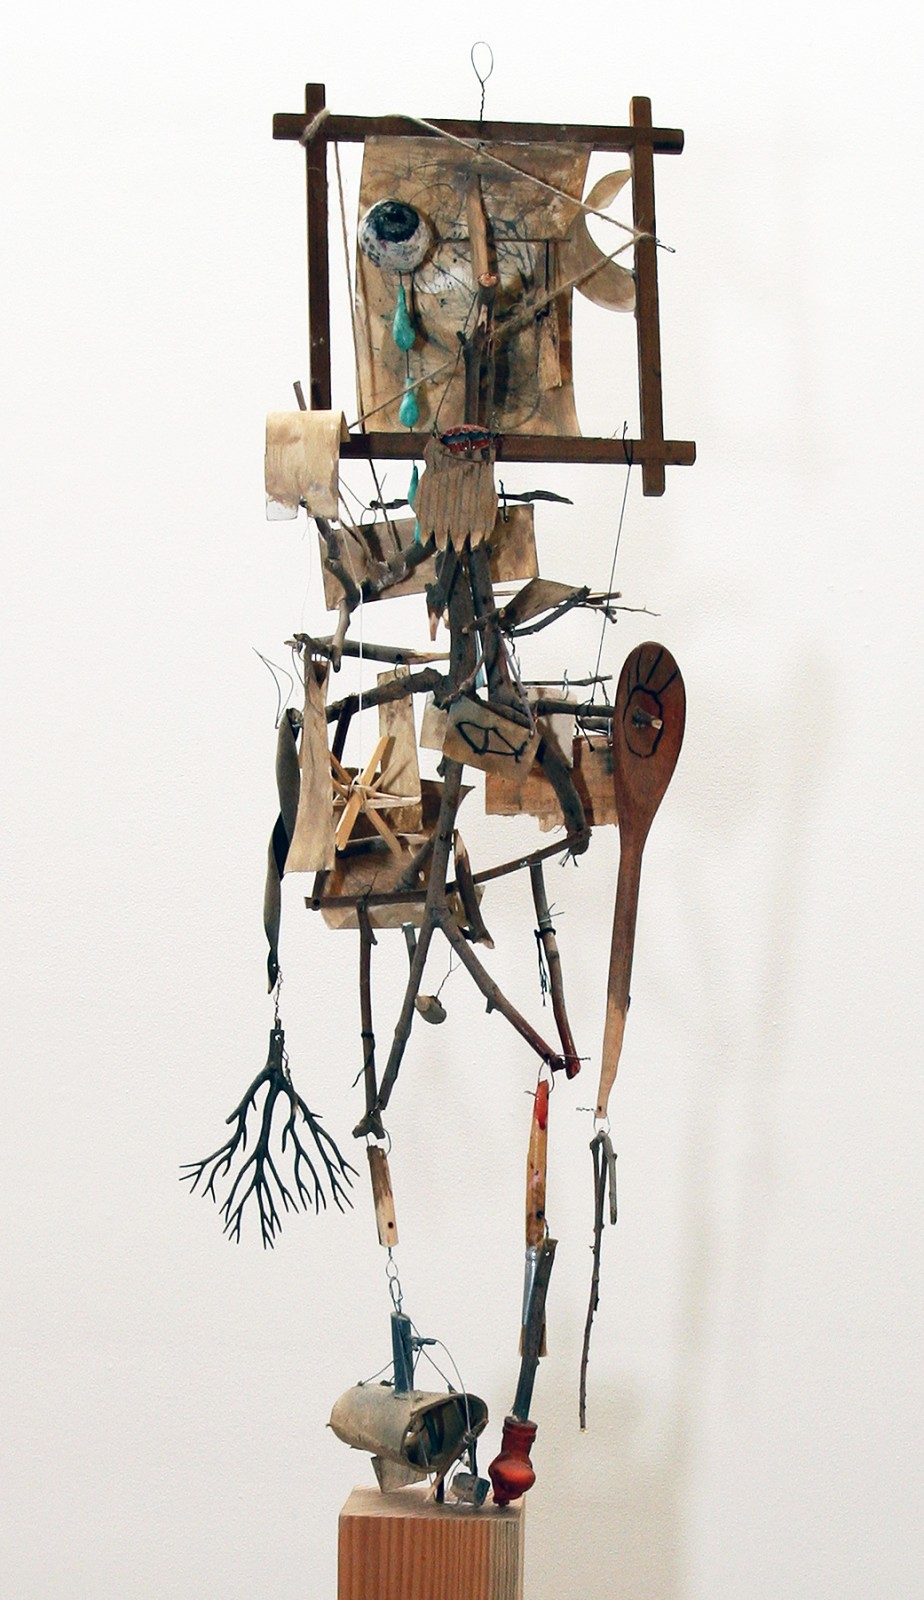 Wayne White, Explorer 2011, mixed media, 27 x 9 x 10 inches